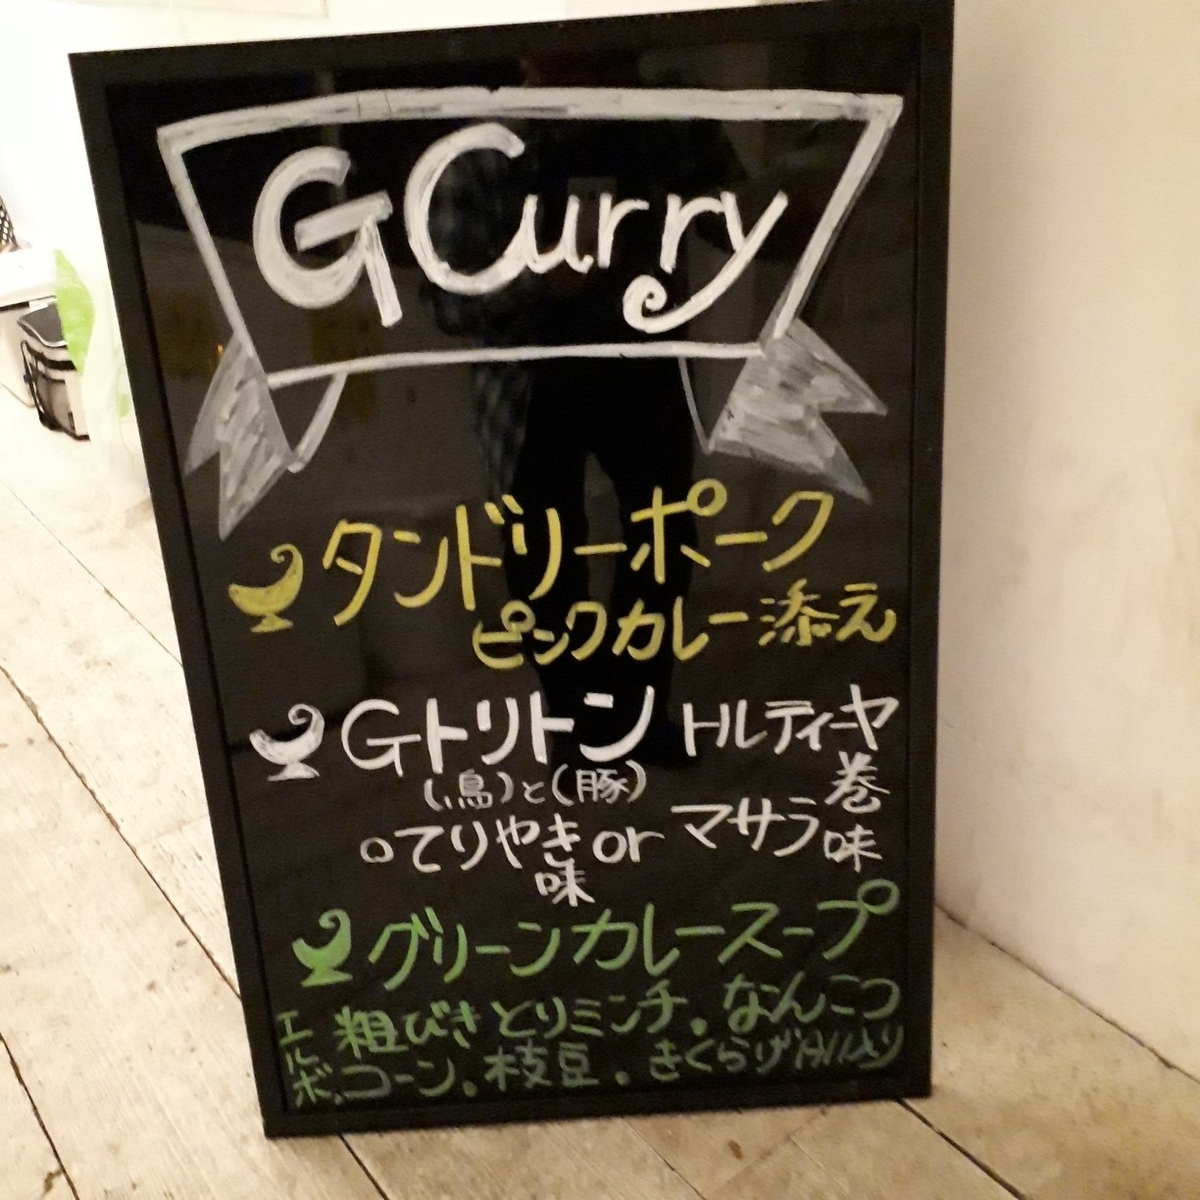 G curry